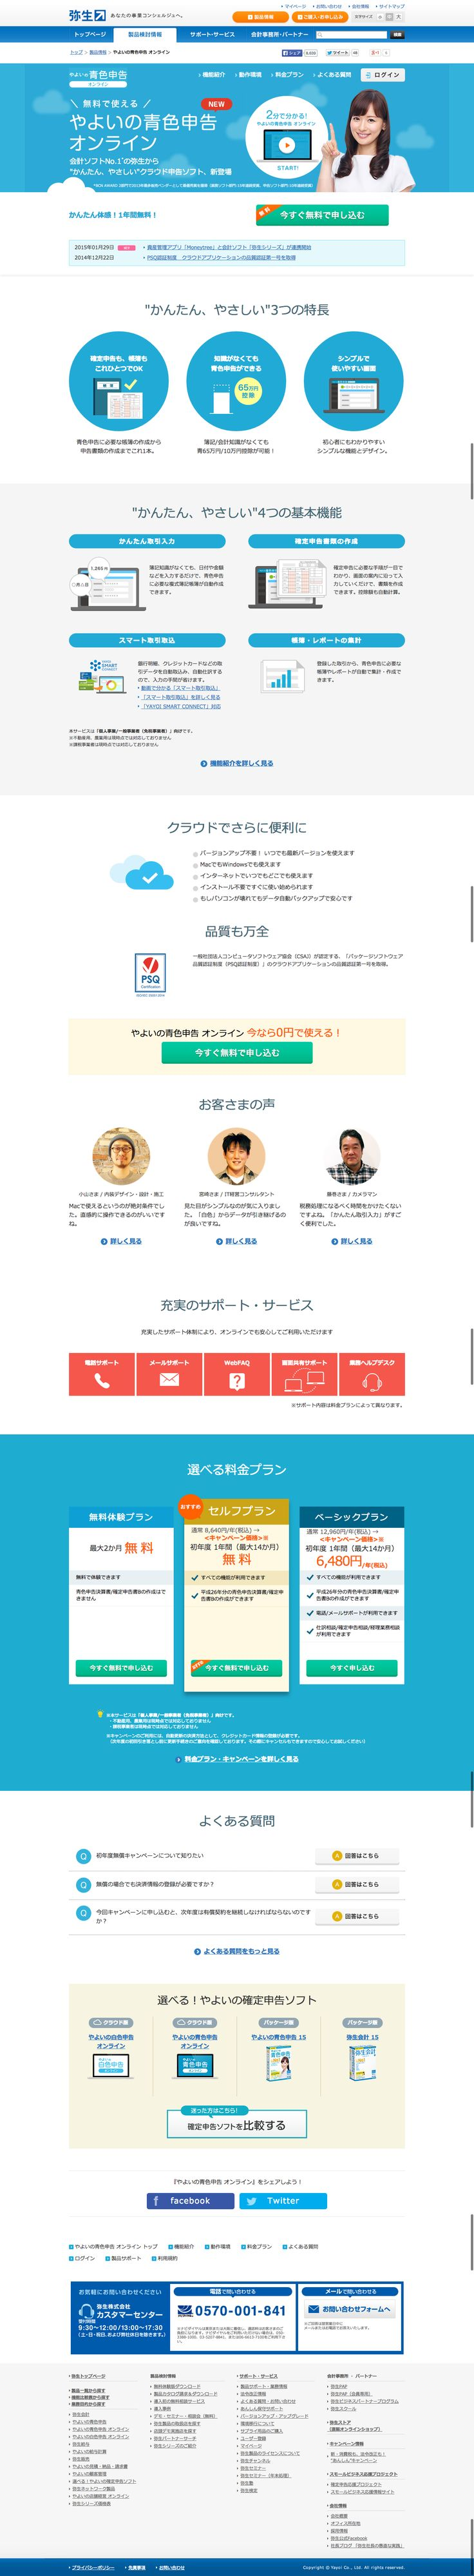 やよいの青色申告オンライン|会計ソフトは弥生株式会社 Yayoi's Blue return - accounting software http://www.yayoi-kk.co.jp/products/aoiro_ol/index.html